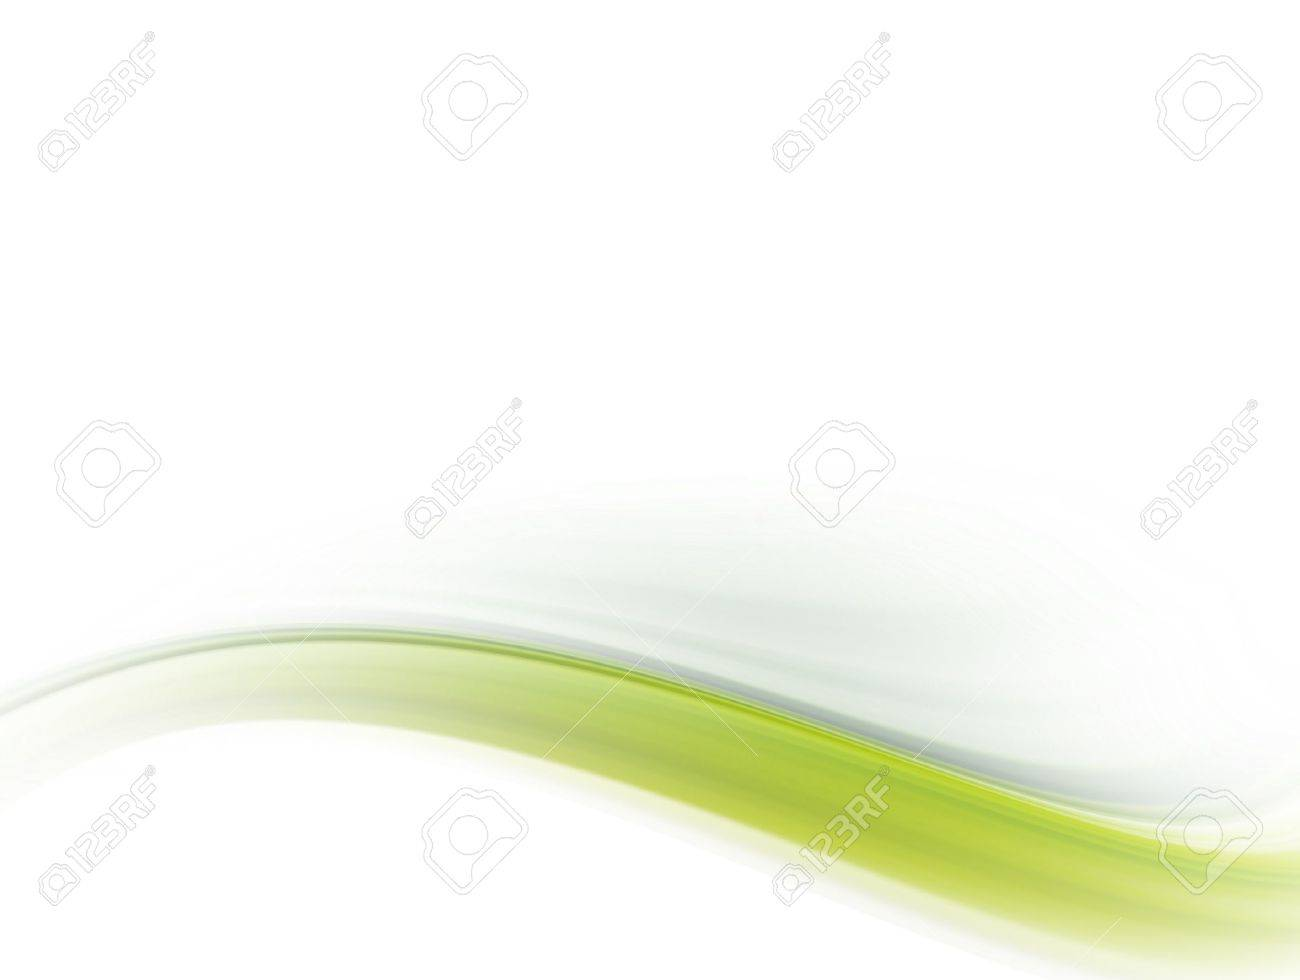 green dynamic wave on white background. Abstract illustrtation Stock Photo - 9696999